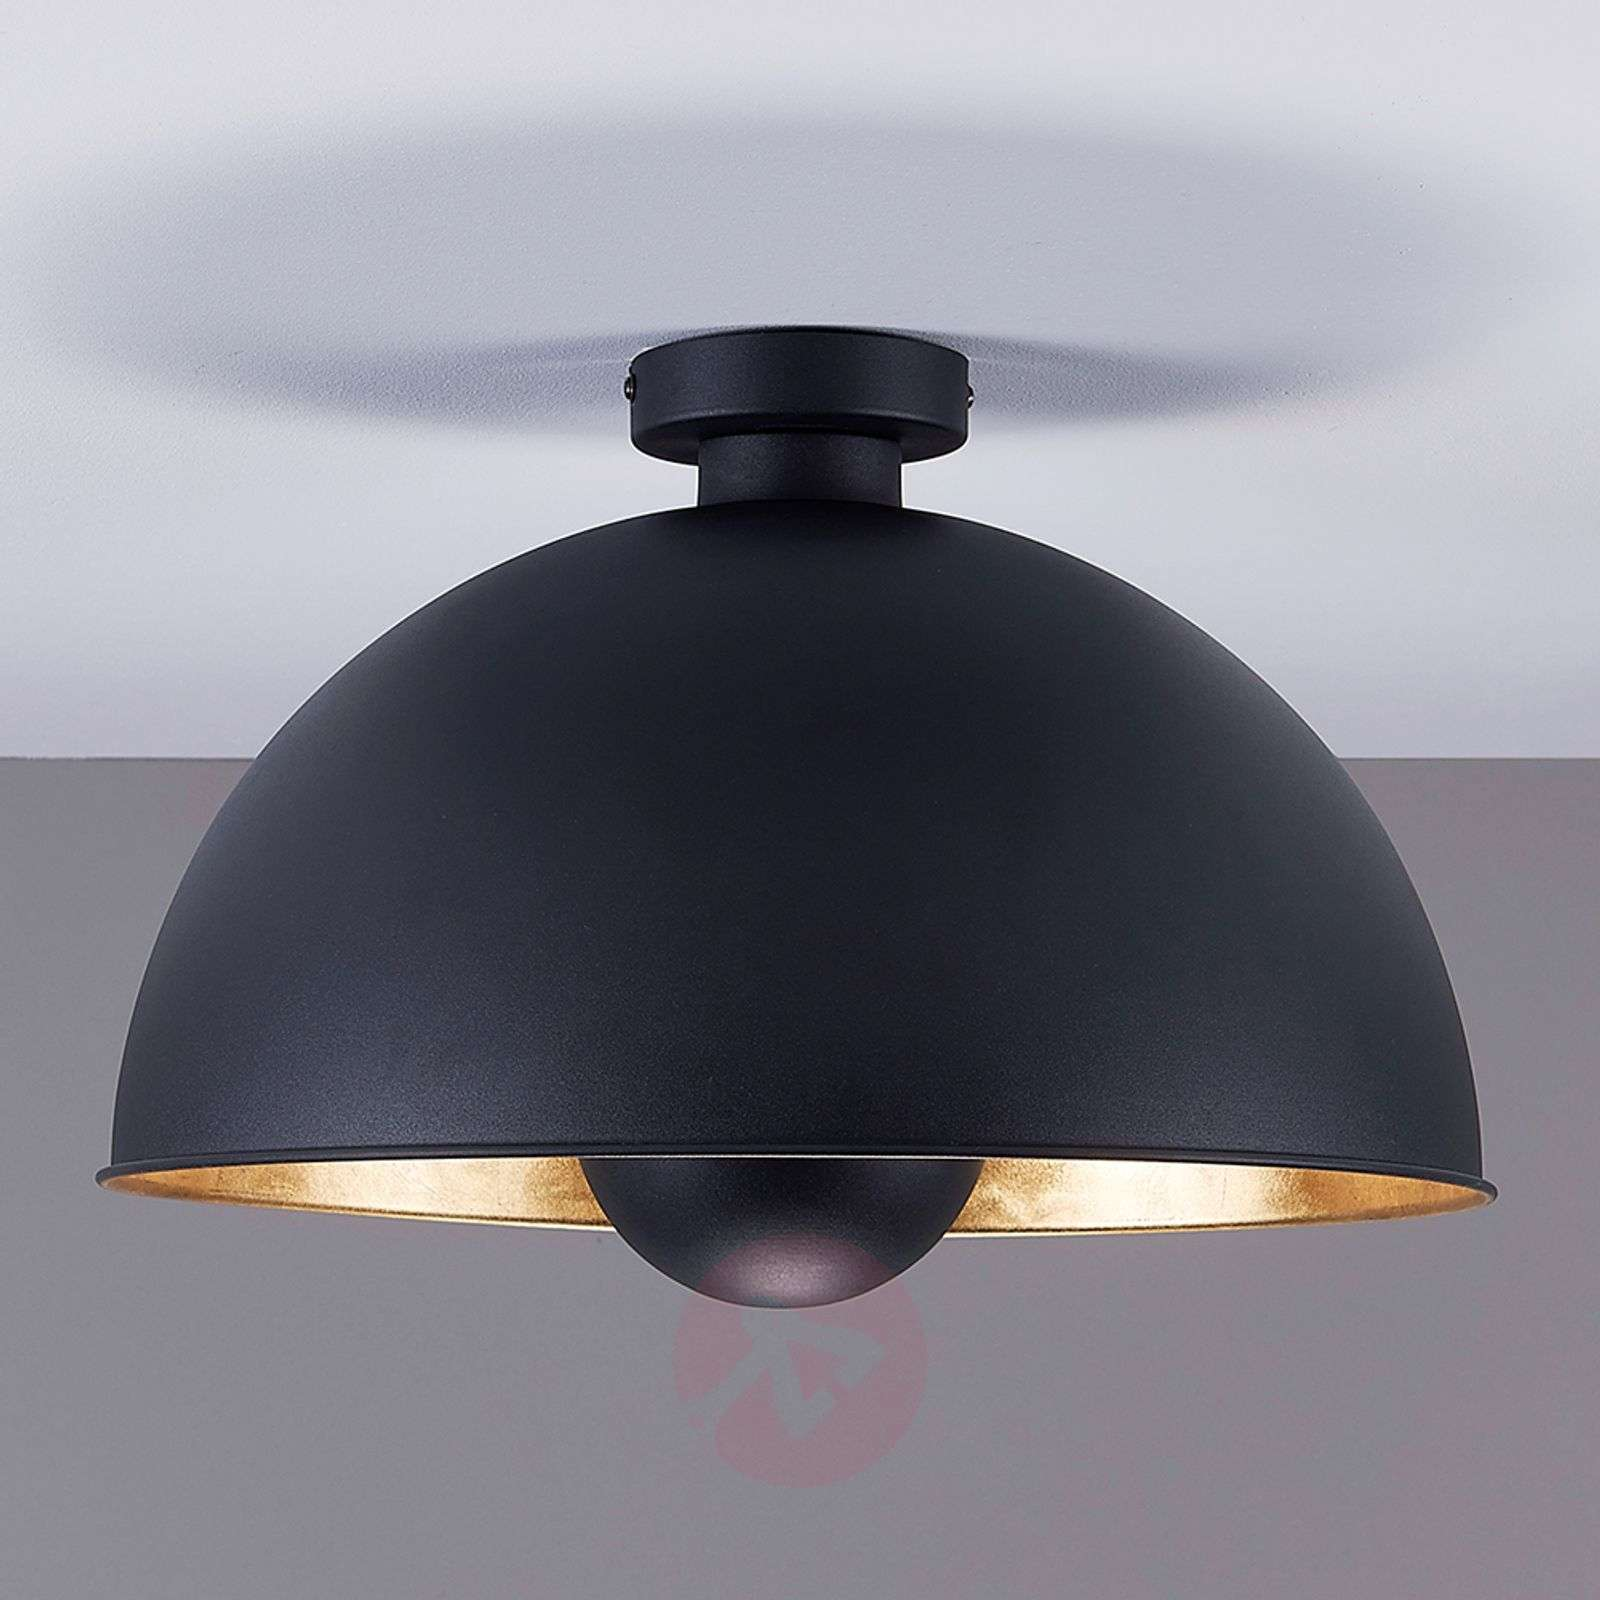 Attractive ceiling lamp Lya, black and gold-9620831-02